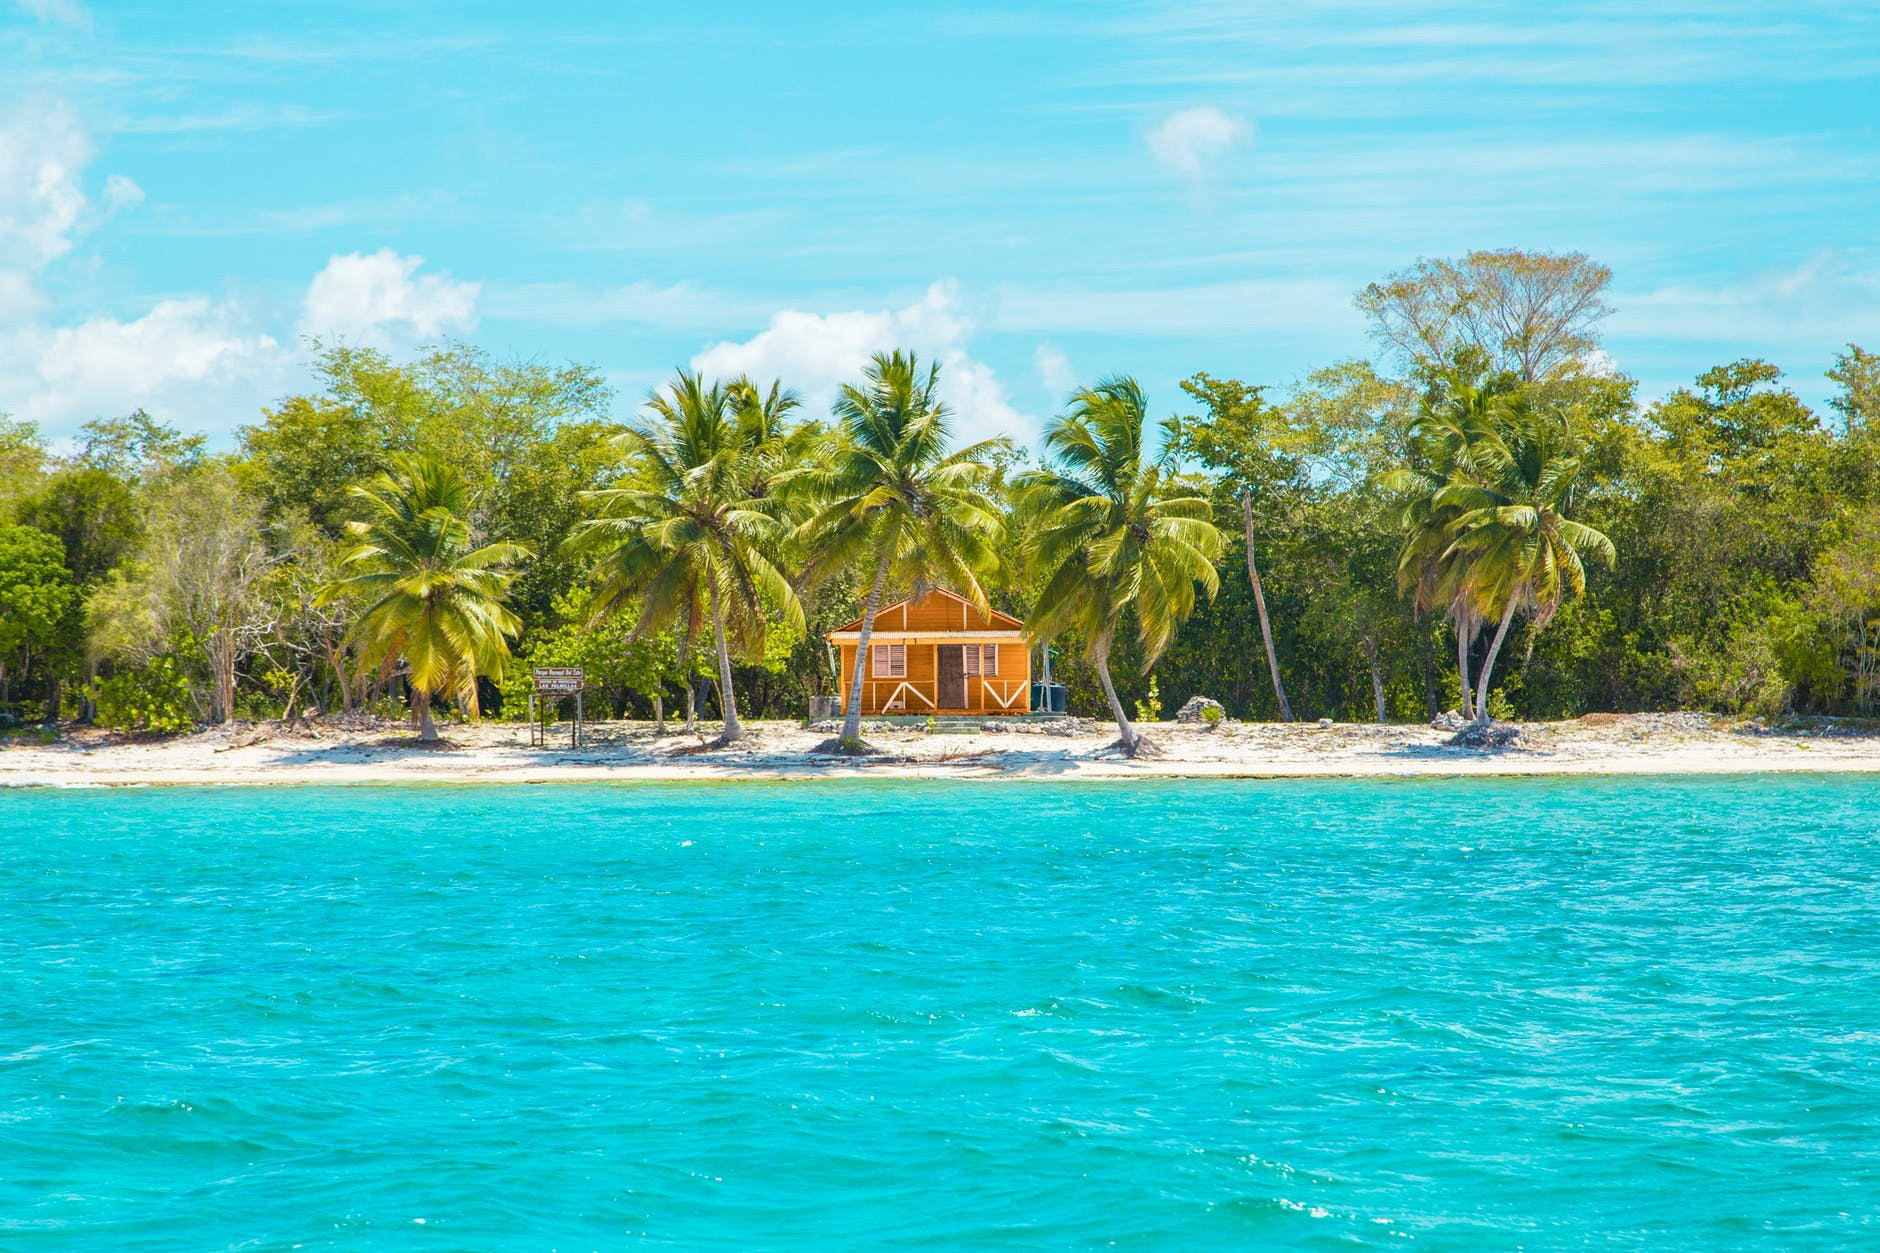 Flight Deal Round Trip From Los Angeles Area to Dominican Republic #losangeles #dominicanrepublic #1week